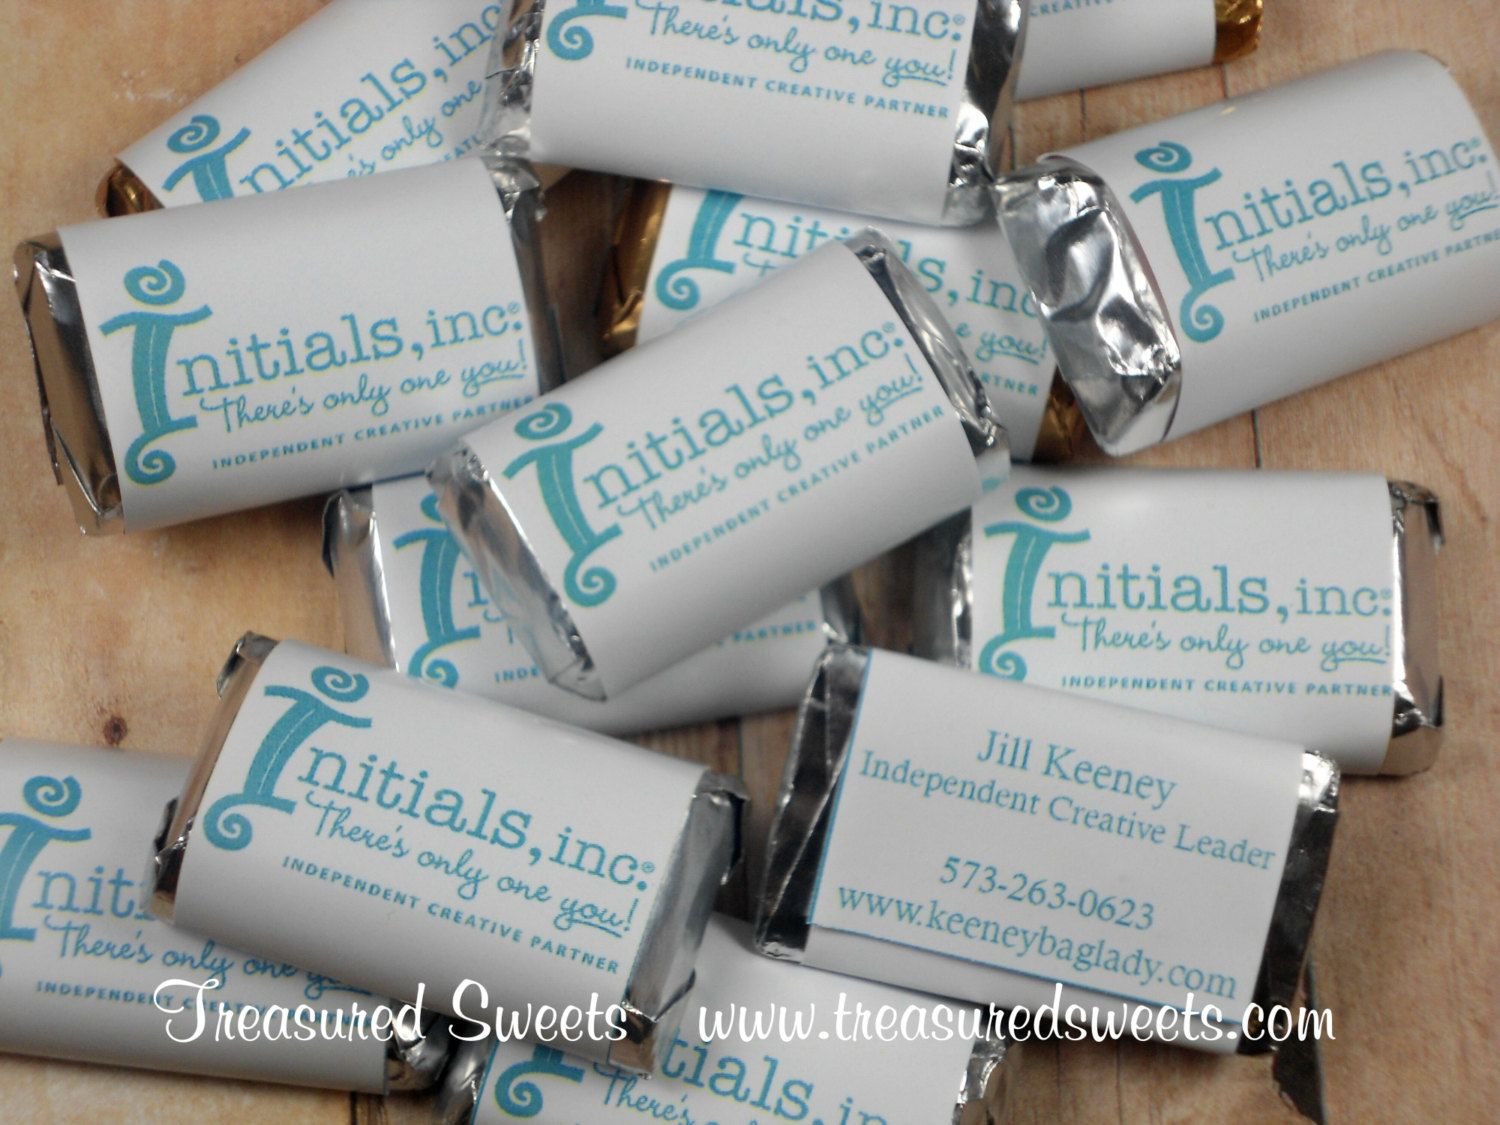 100 Mini Edible Business Cards, Promotional Custom Candy Bar ...